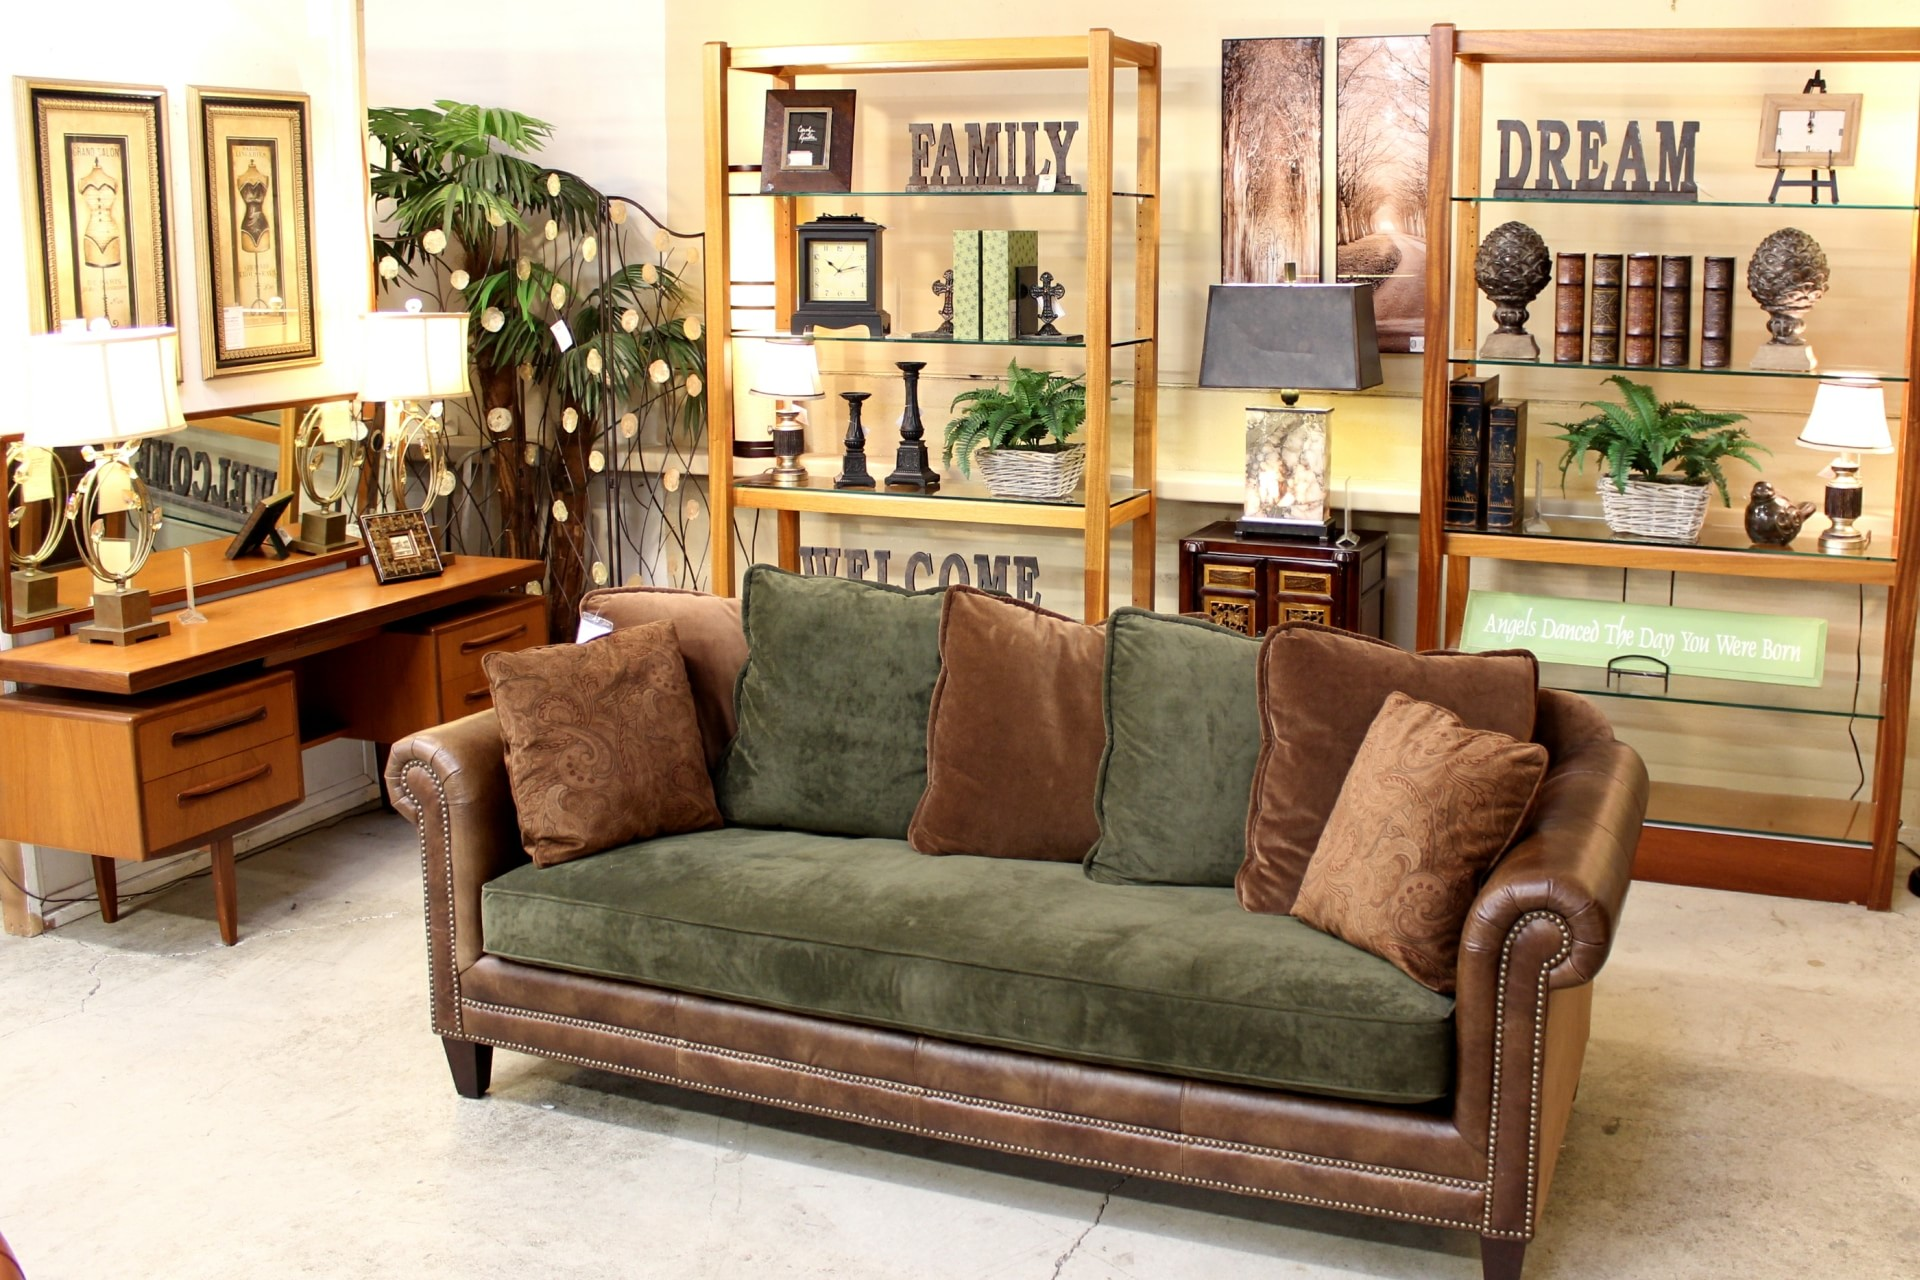 Merveilleux Upscale Consignment Furniture U0026 Decor 17785 SE 82nd Dr, Gladstone, OR 97027    YP.com